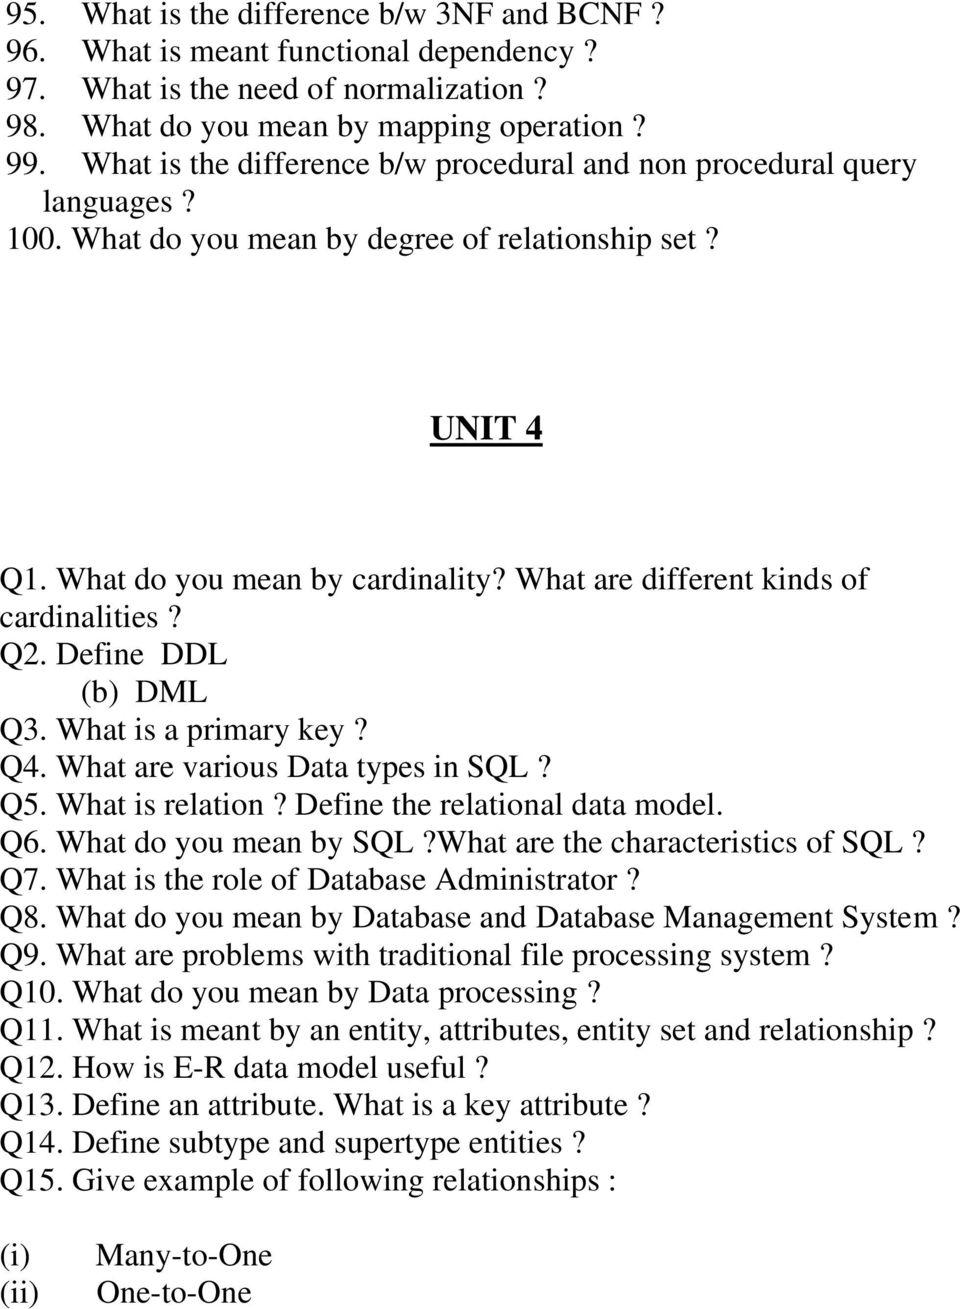 What are different kinds of cardinalities? Q2. Define DDL (b) DML Q3. What is a primary key? Q4. What are various Data types in SQL? Q5. What is relation? Define the relational data model. Q6.